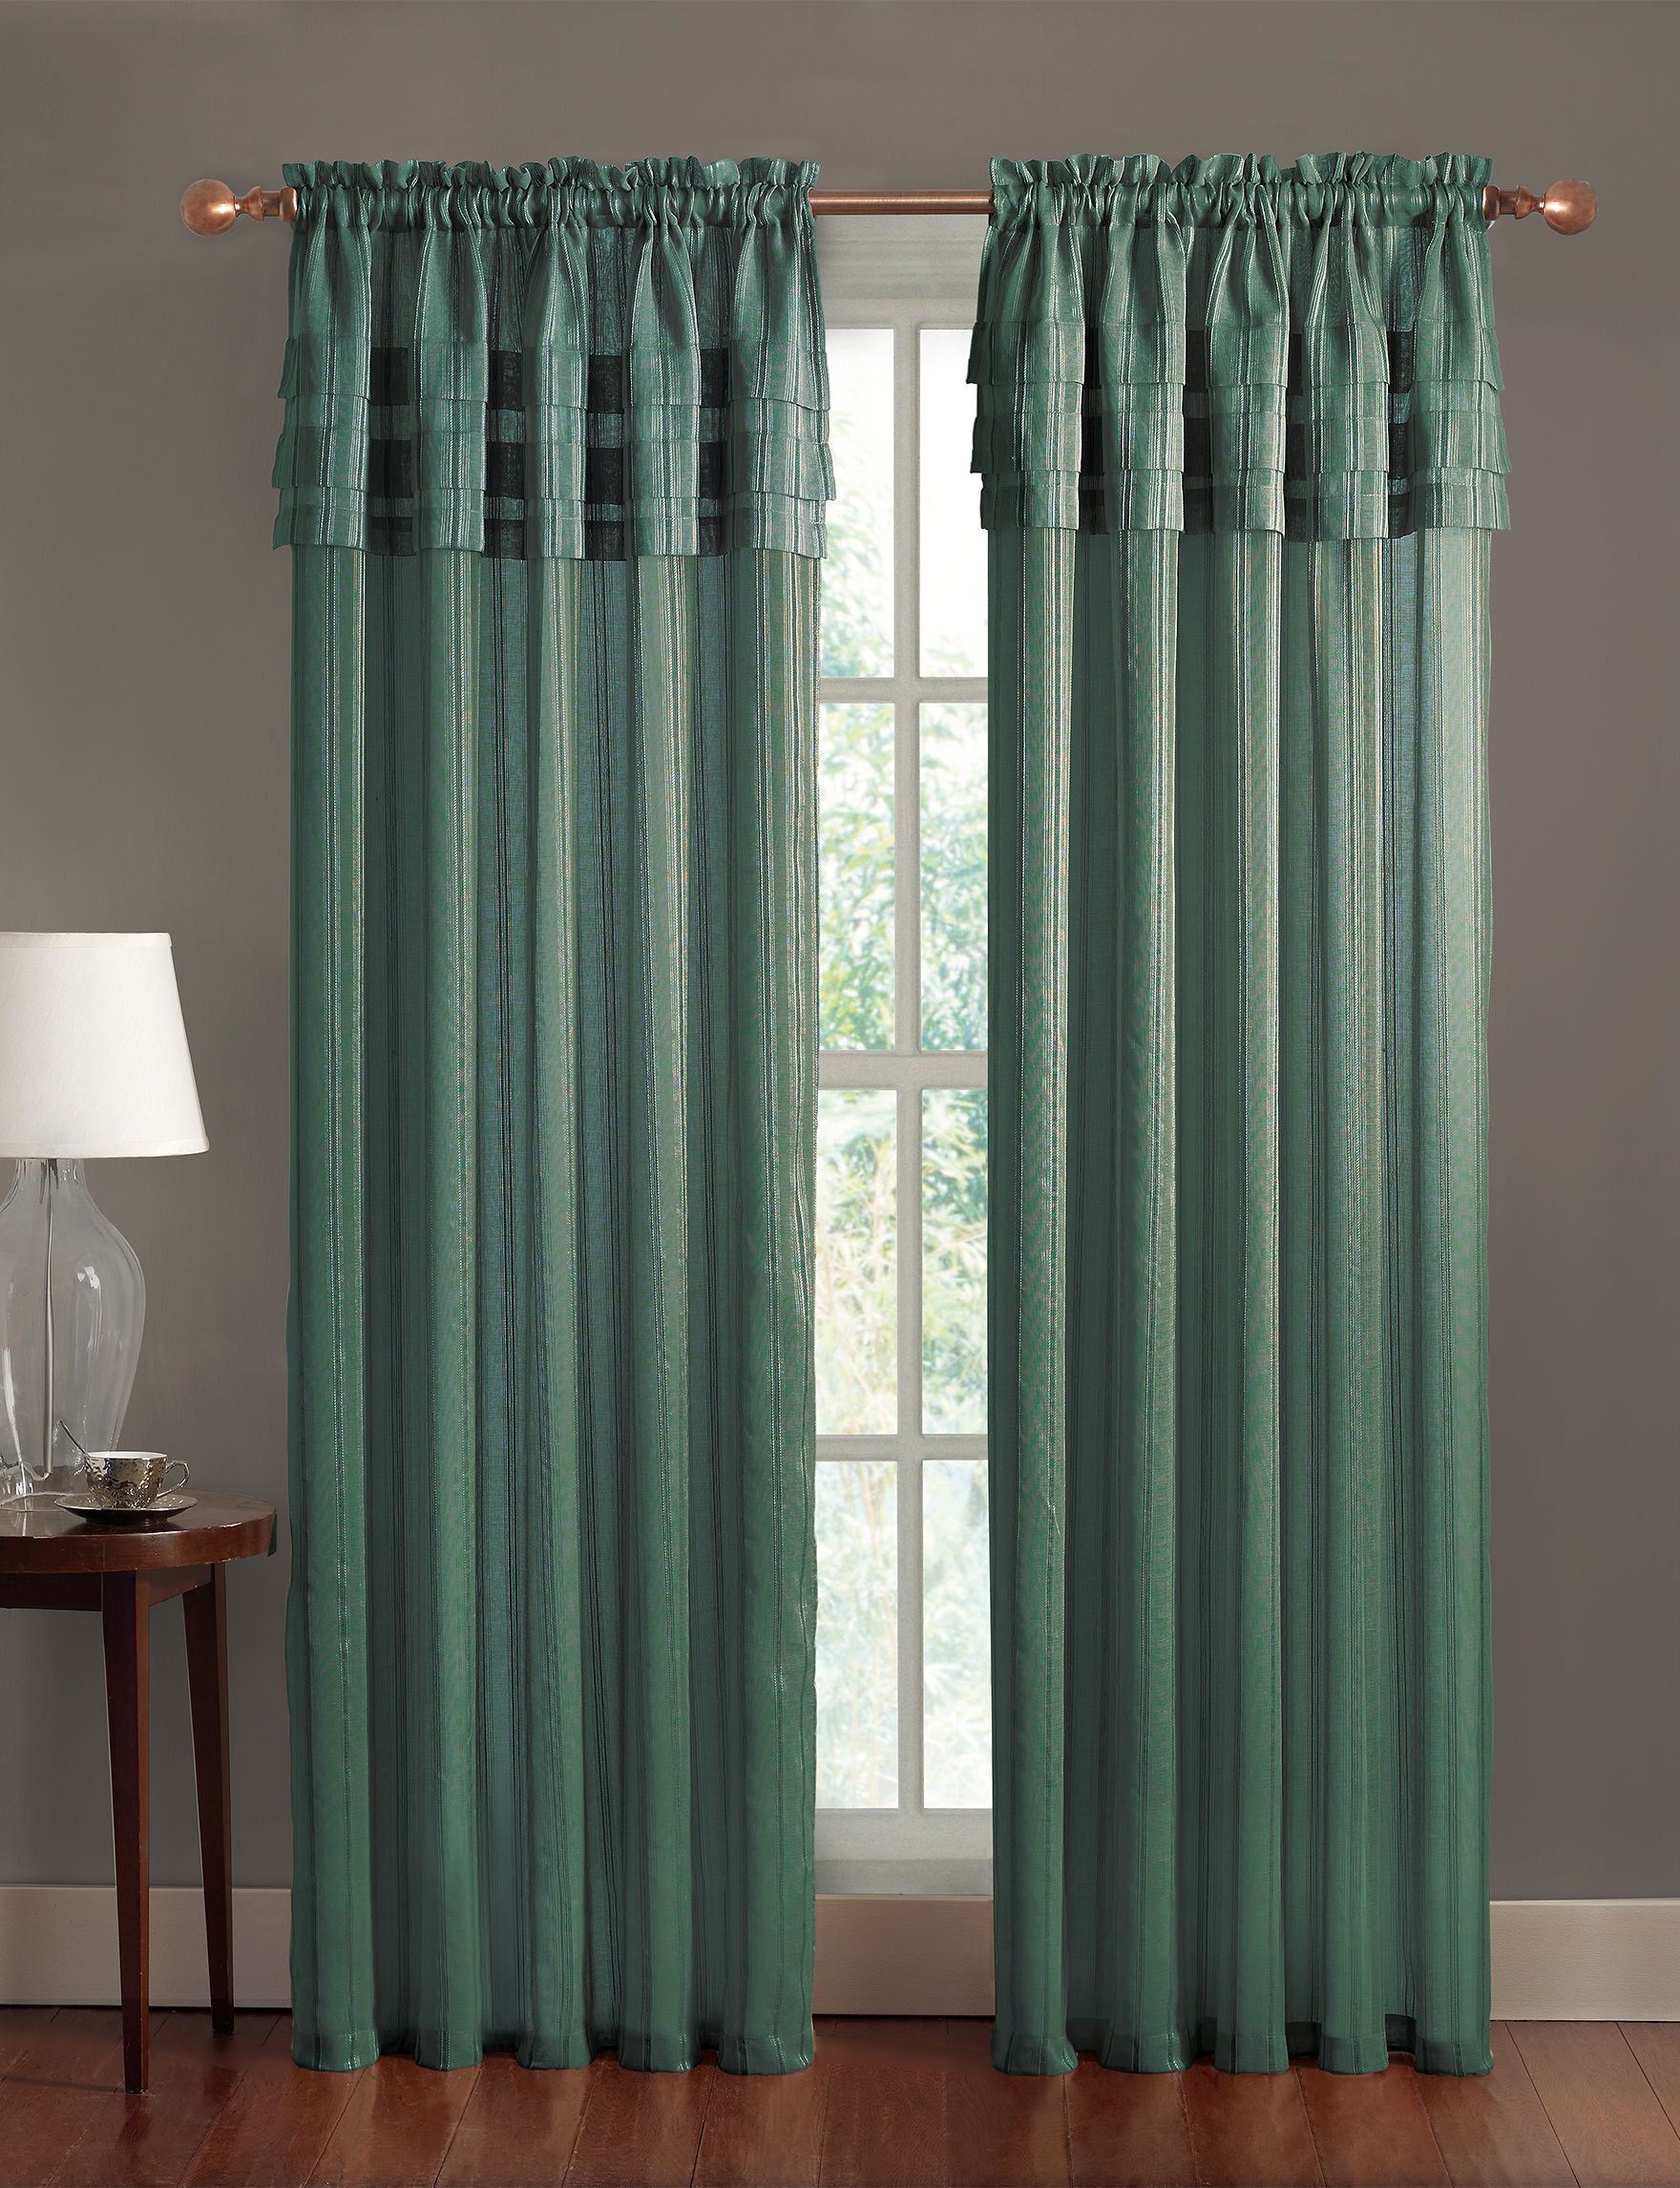 Victoria Classics Blue Curtains & Drapes Window Treatments